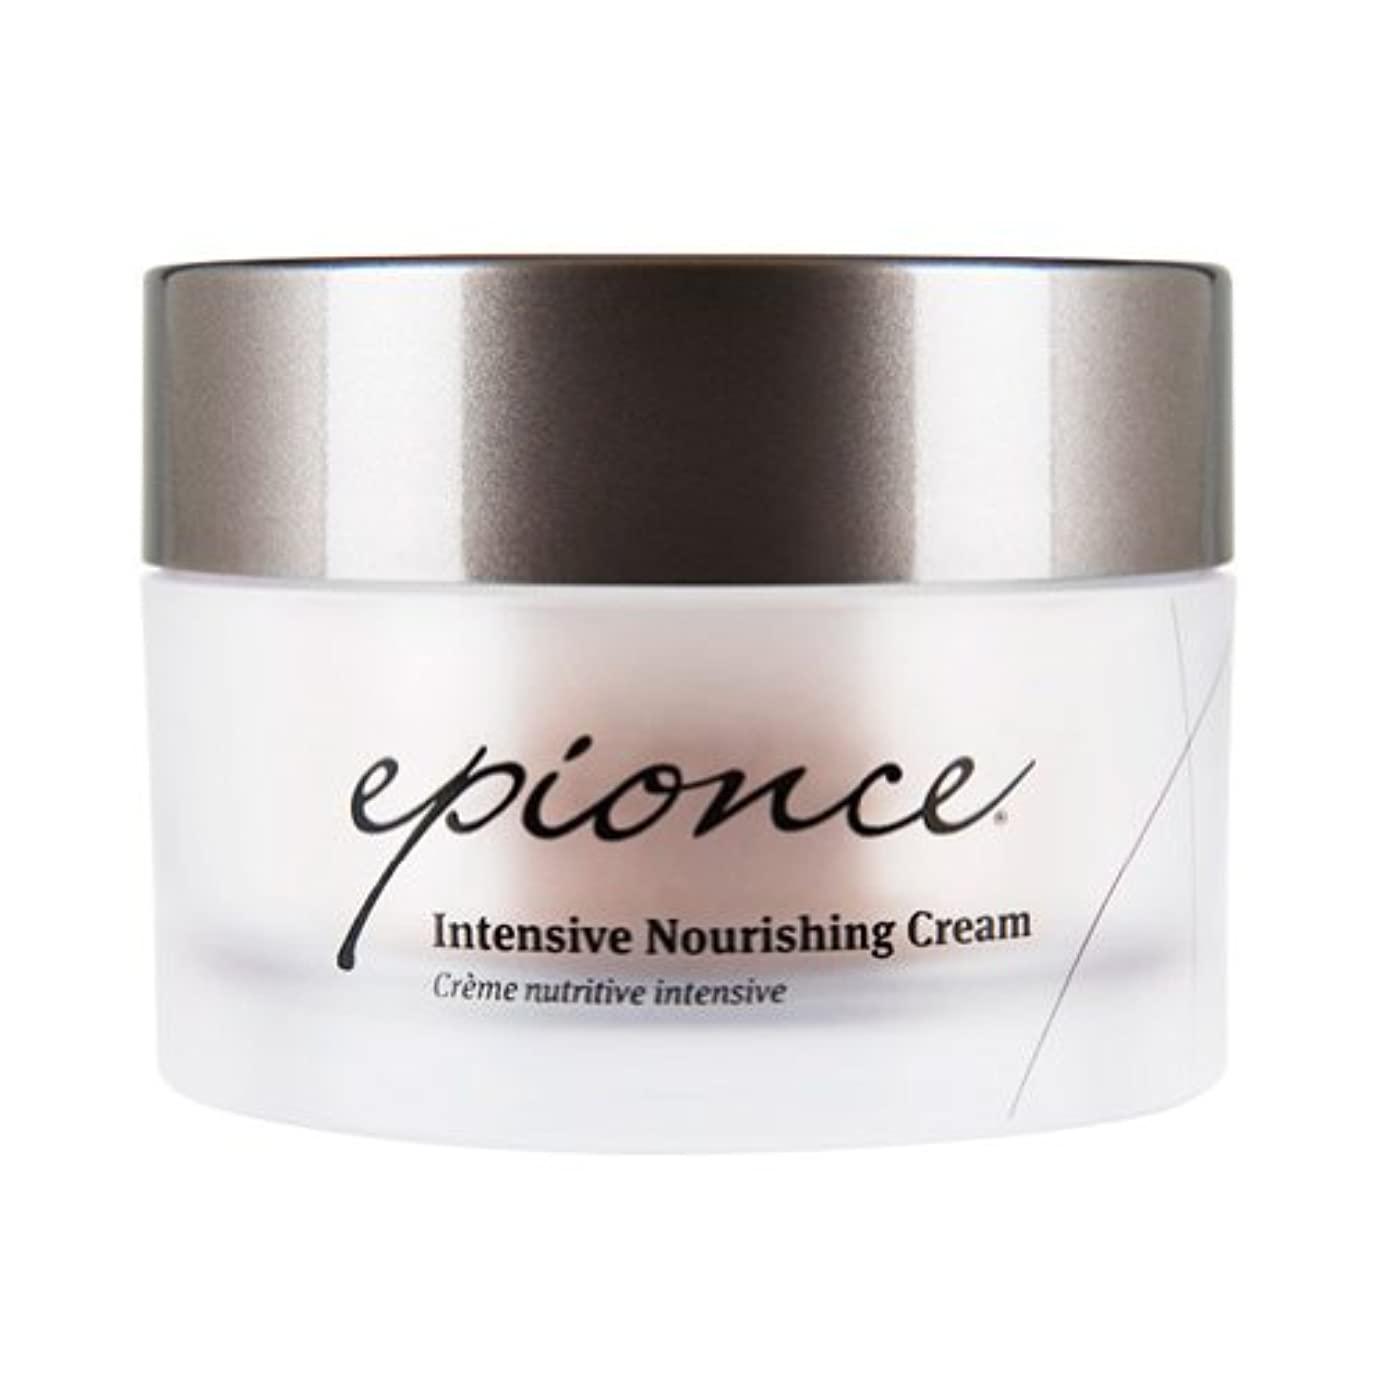 冷淡な慣性お別れEpionce Intensive Nourishing Cream - For Extremely Dry/Photoaged Skin 50g/1.7oz並行輸入品